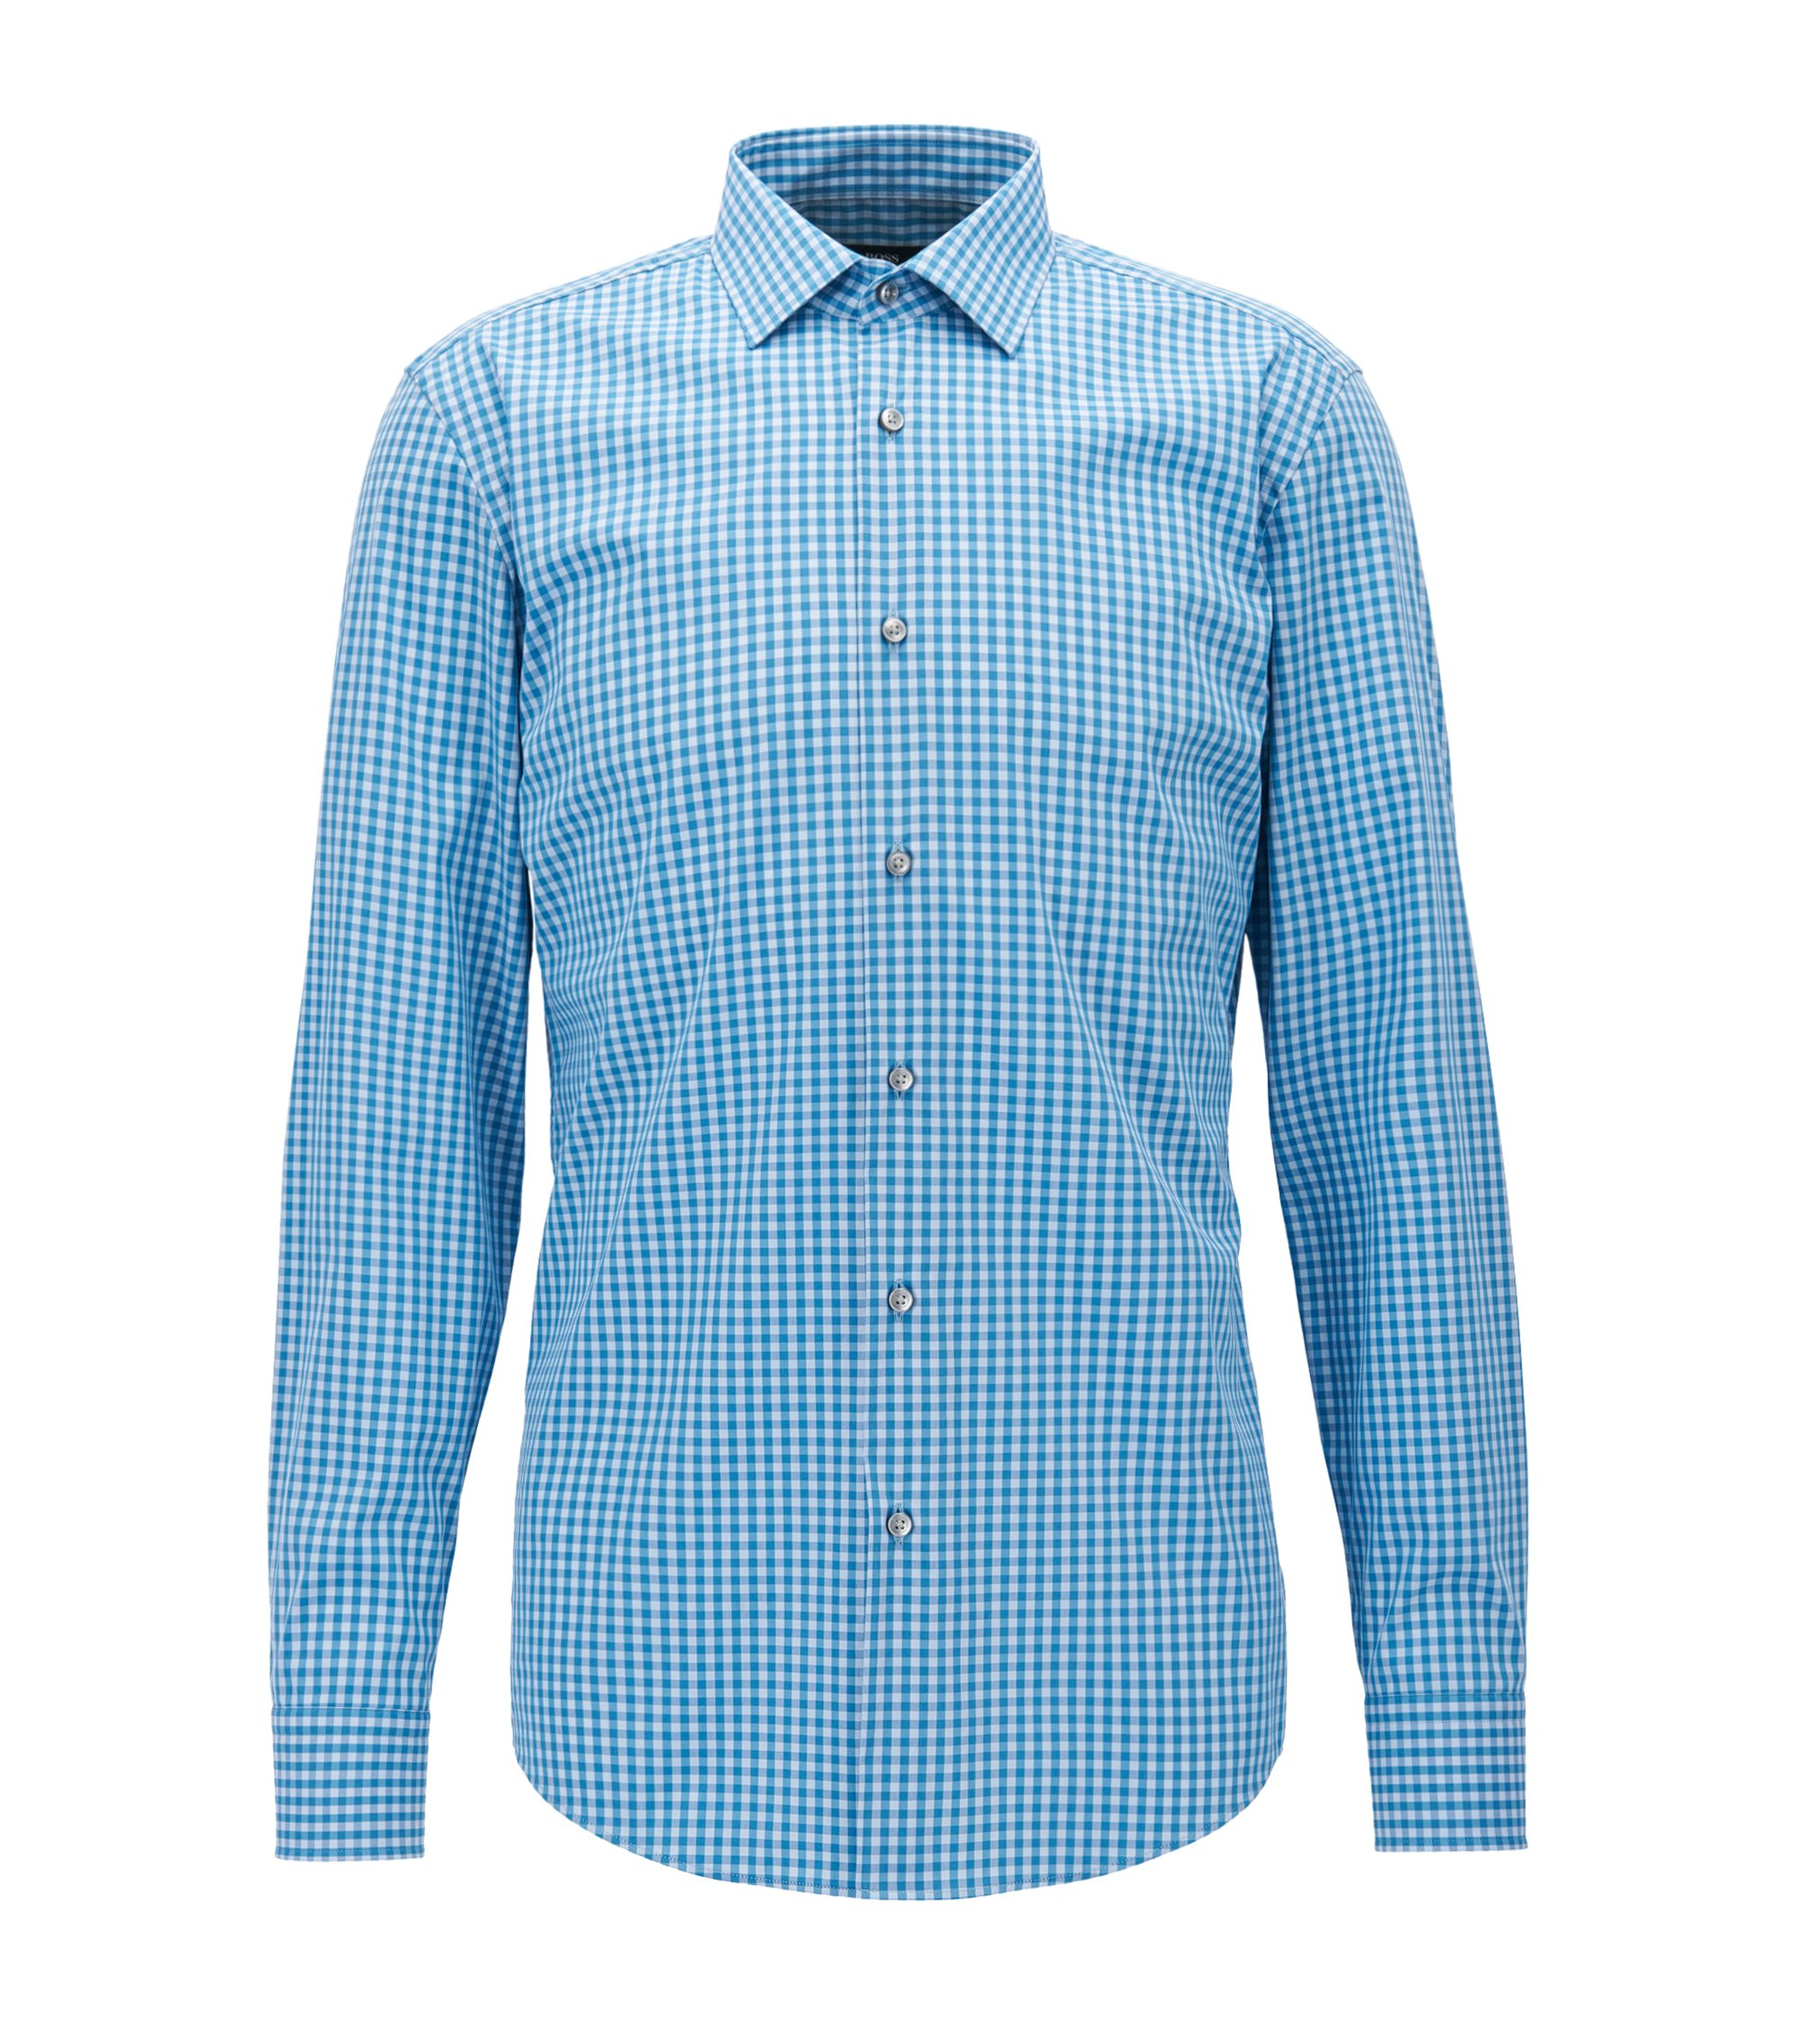 Gingham Cotton Blend Dress Shirt, Slim Fit | Jenno, Turquoise